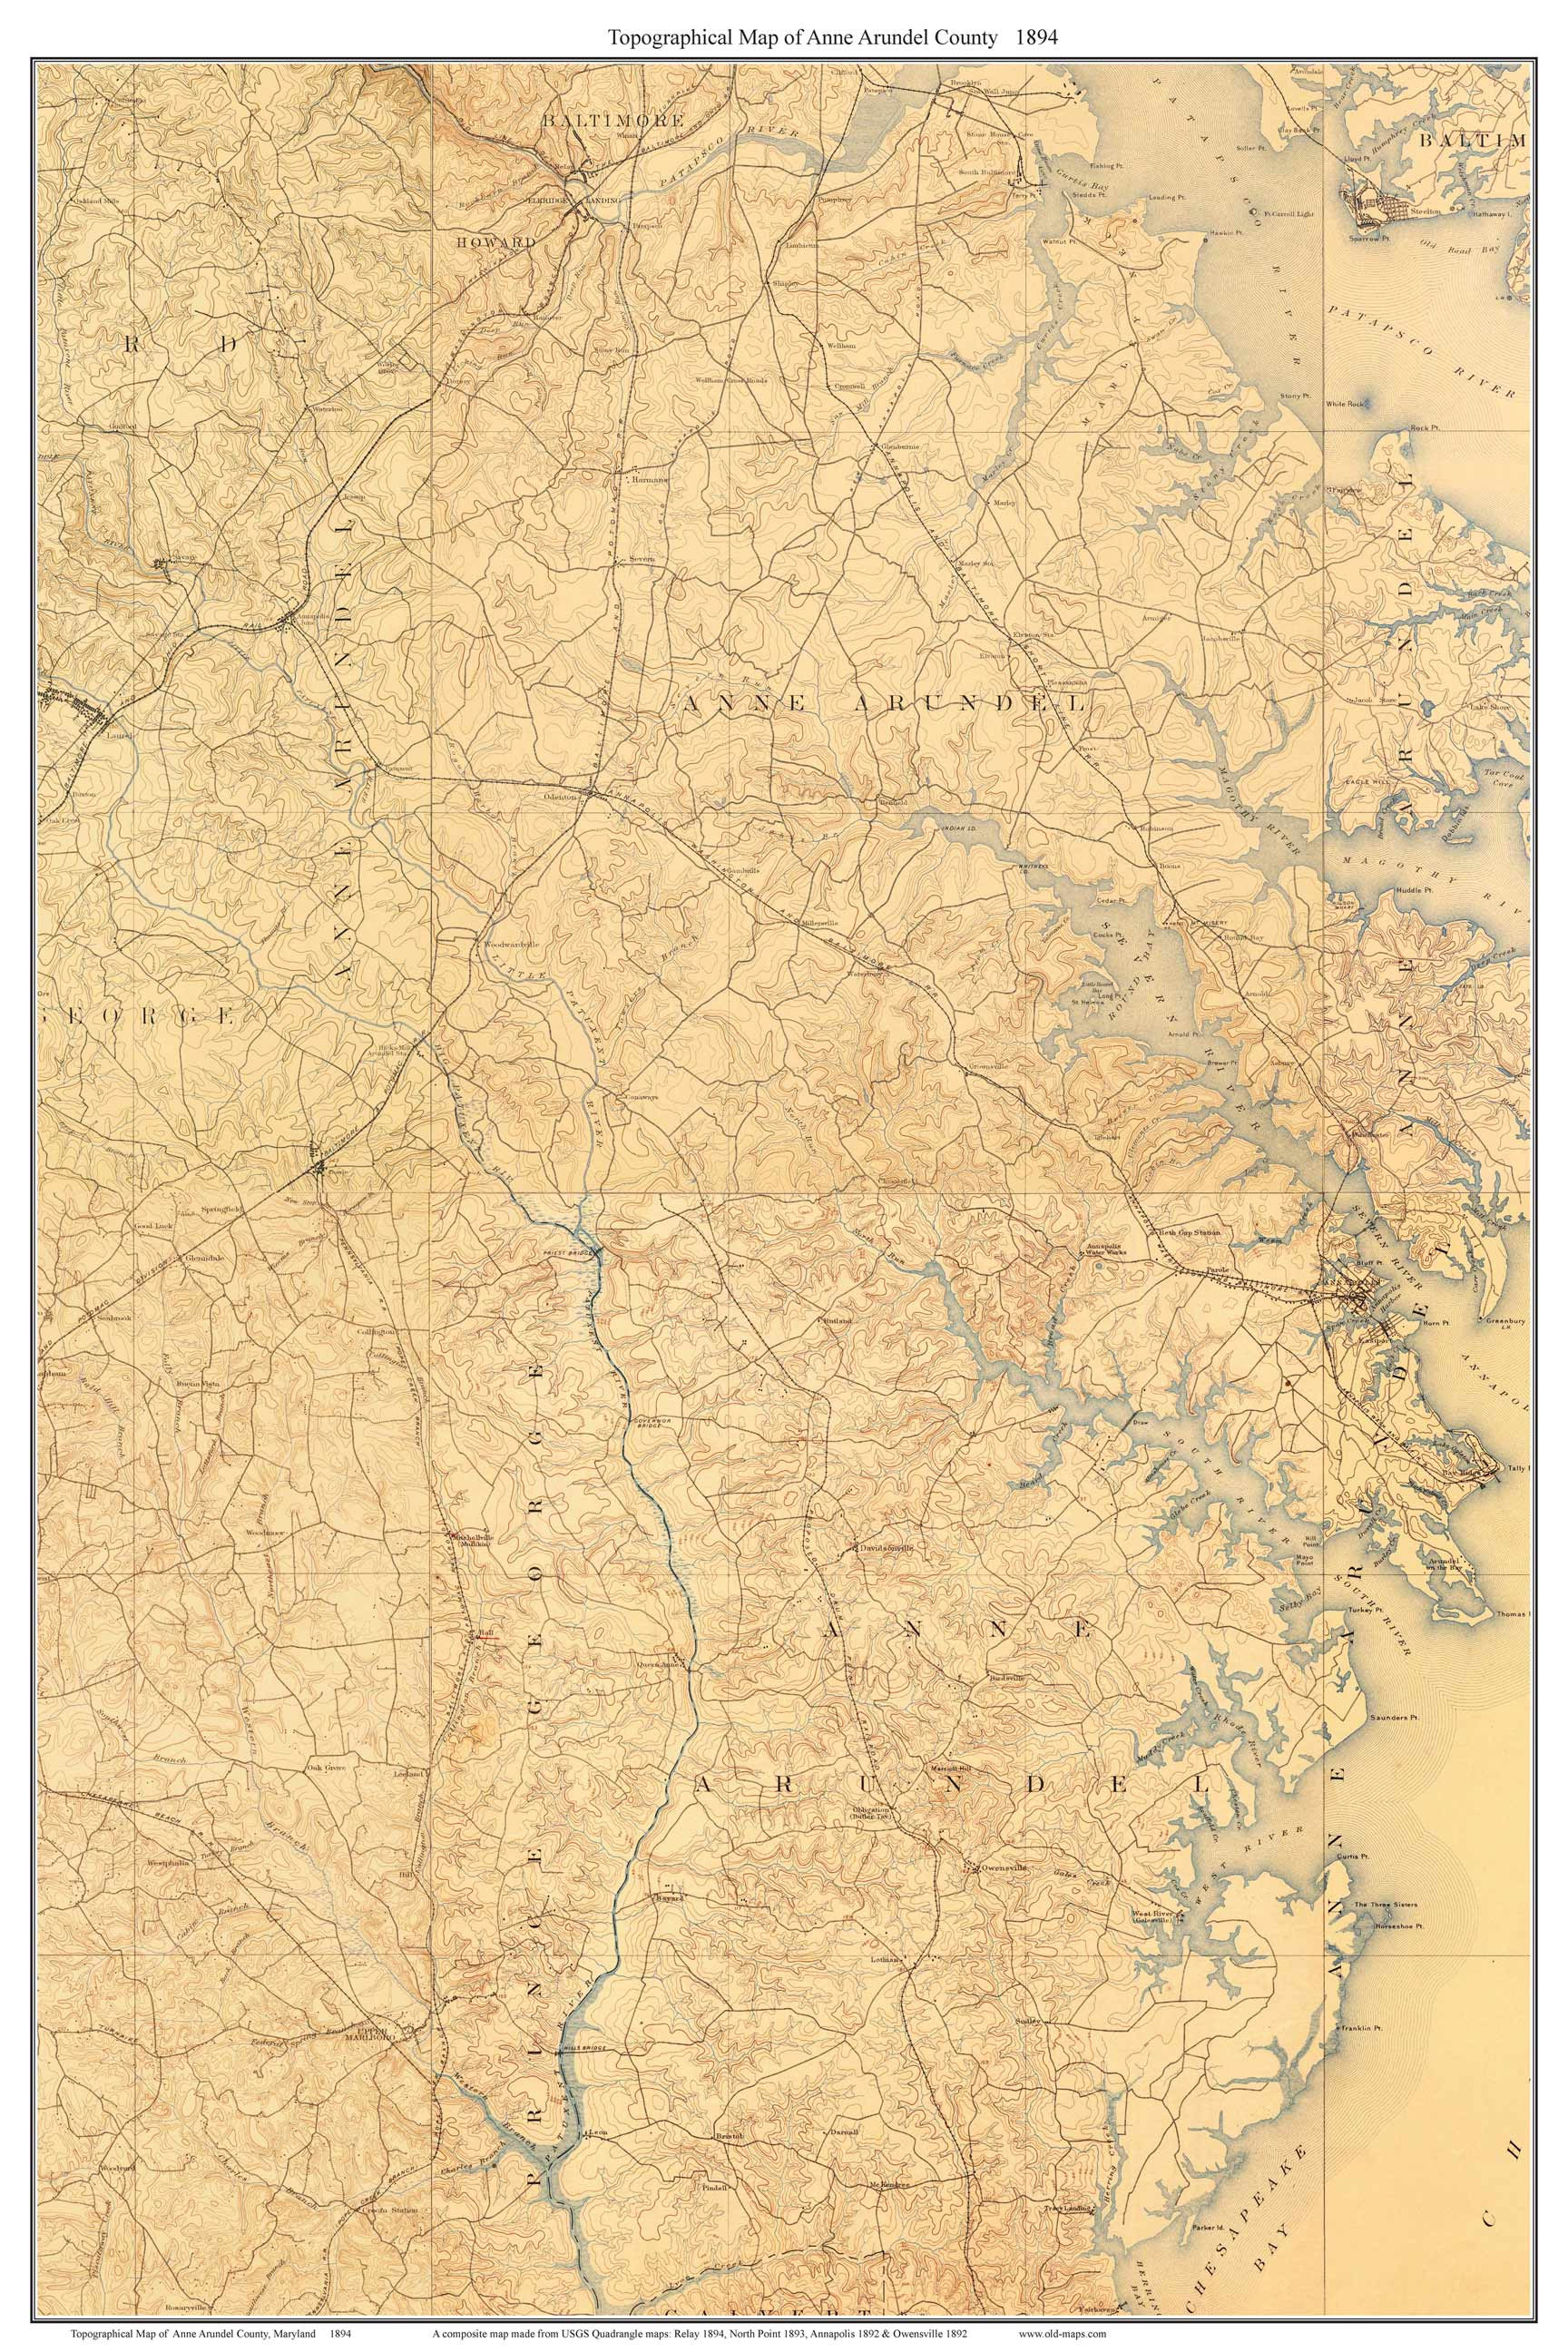 Old Usgs Topo Map Of Anne Arundel County Maryland